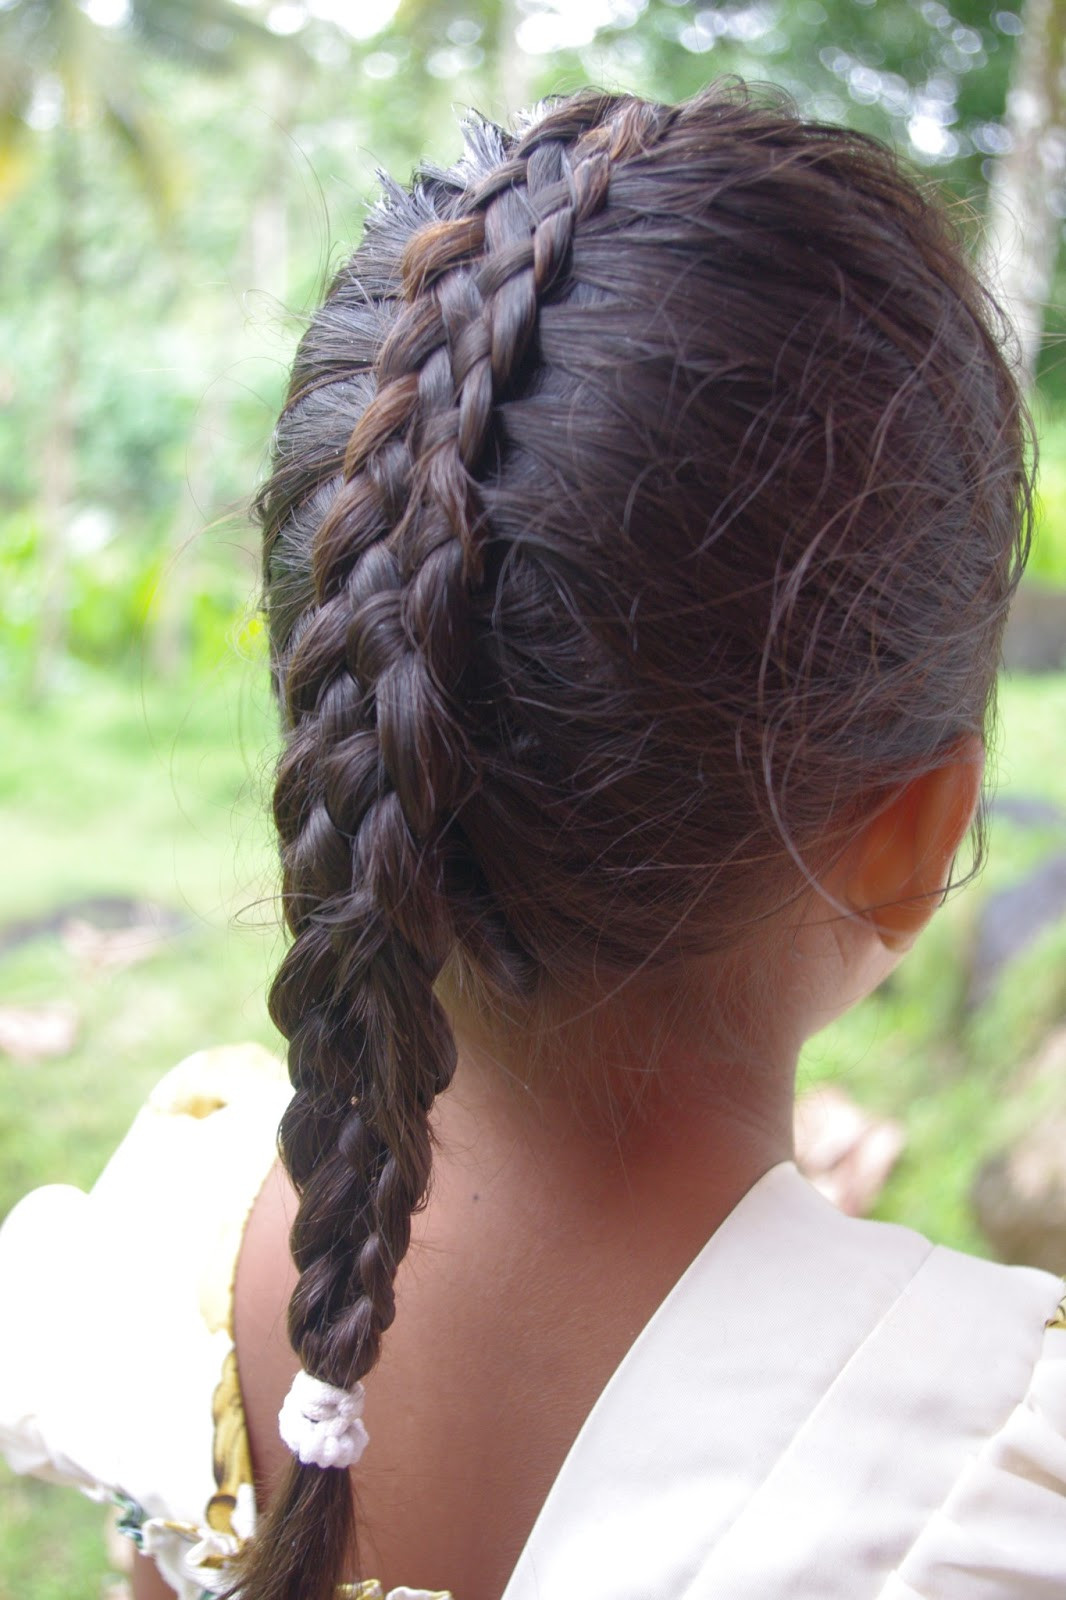 Best ideas about Big Braid Little Braid Hairstyles . Save or Pin Braids & Hairstyles for Super Long Hair Micronesian Girl Now.